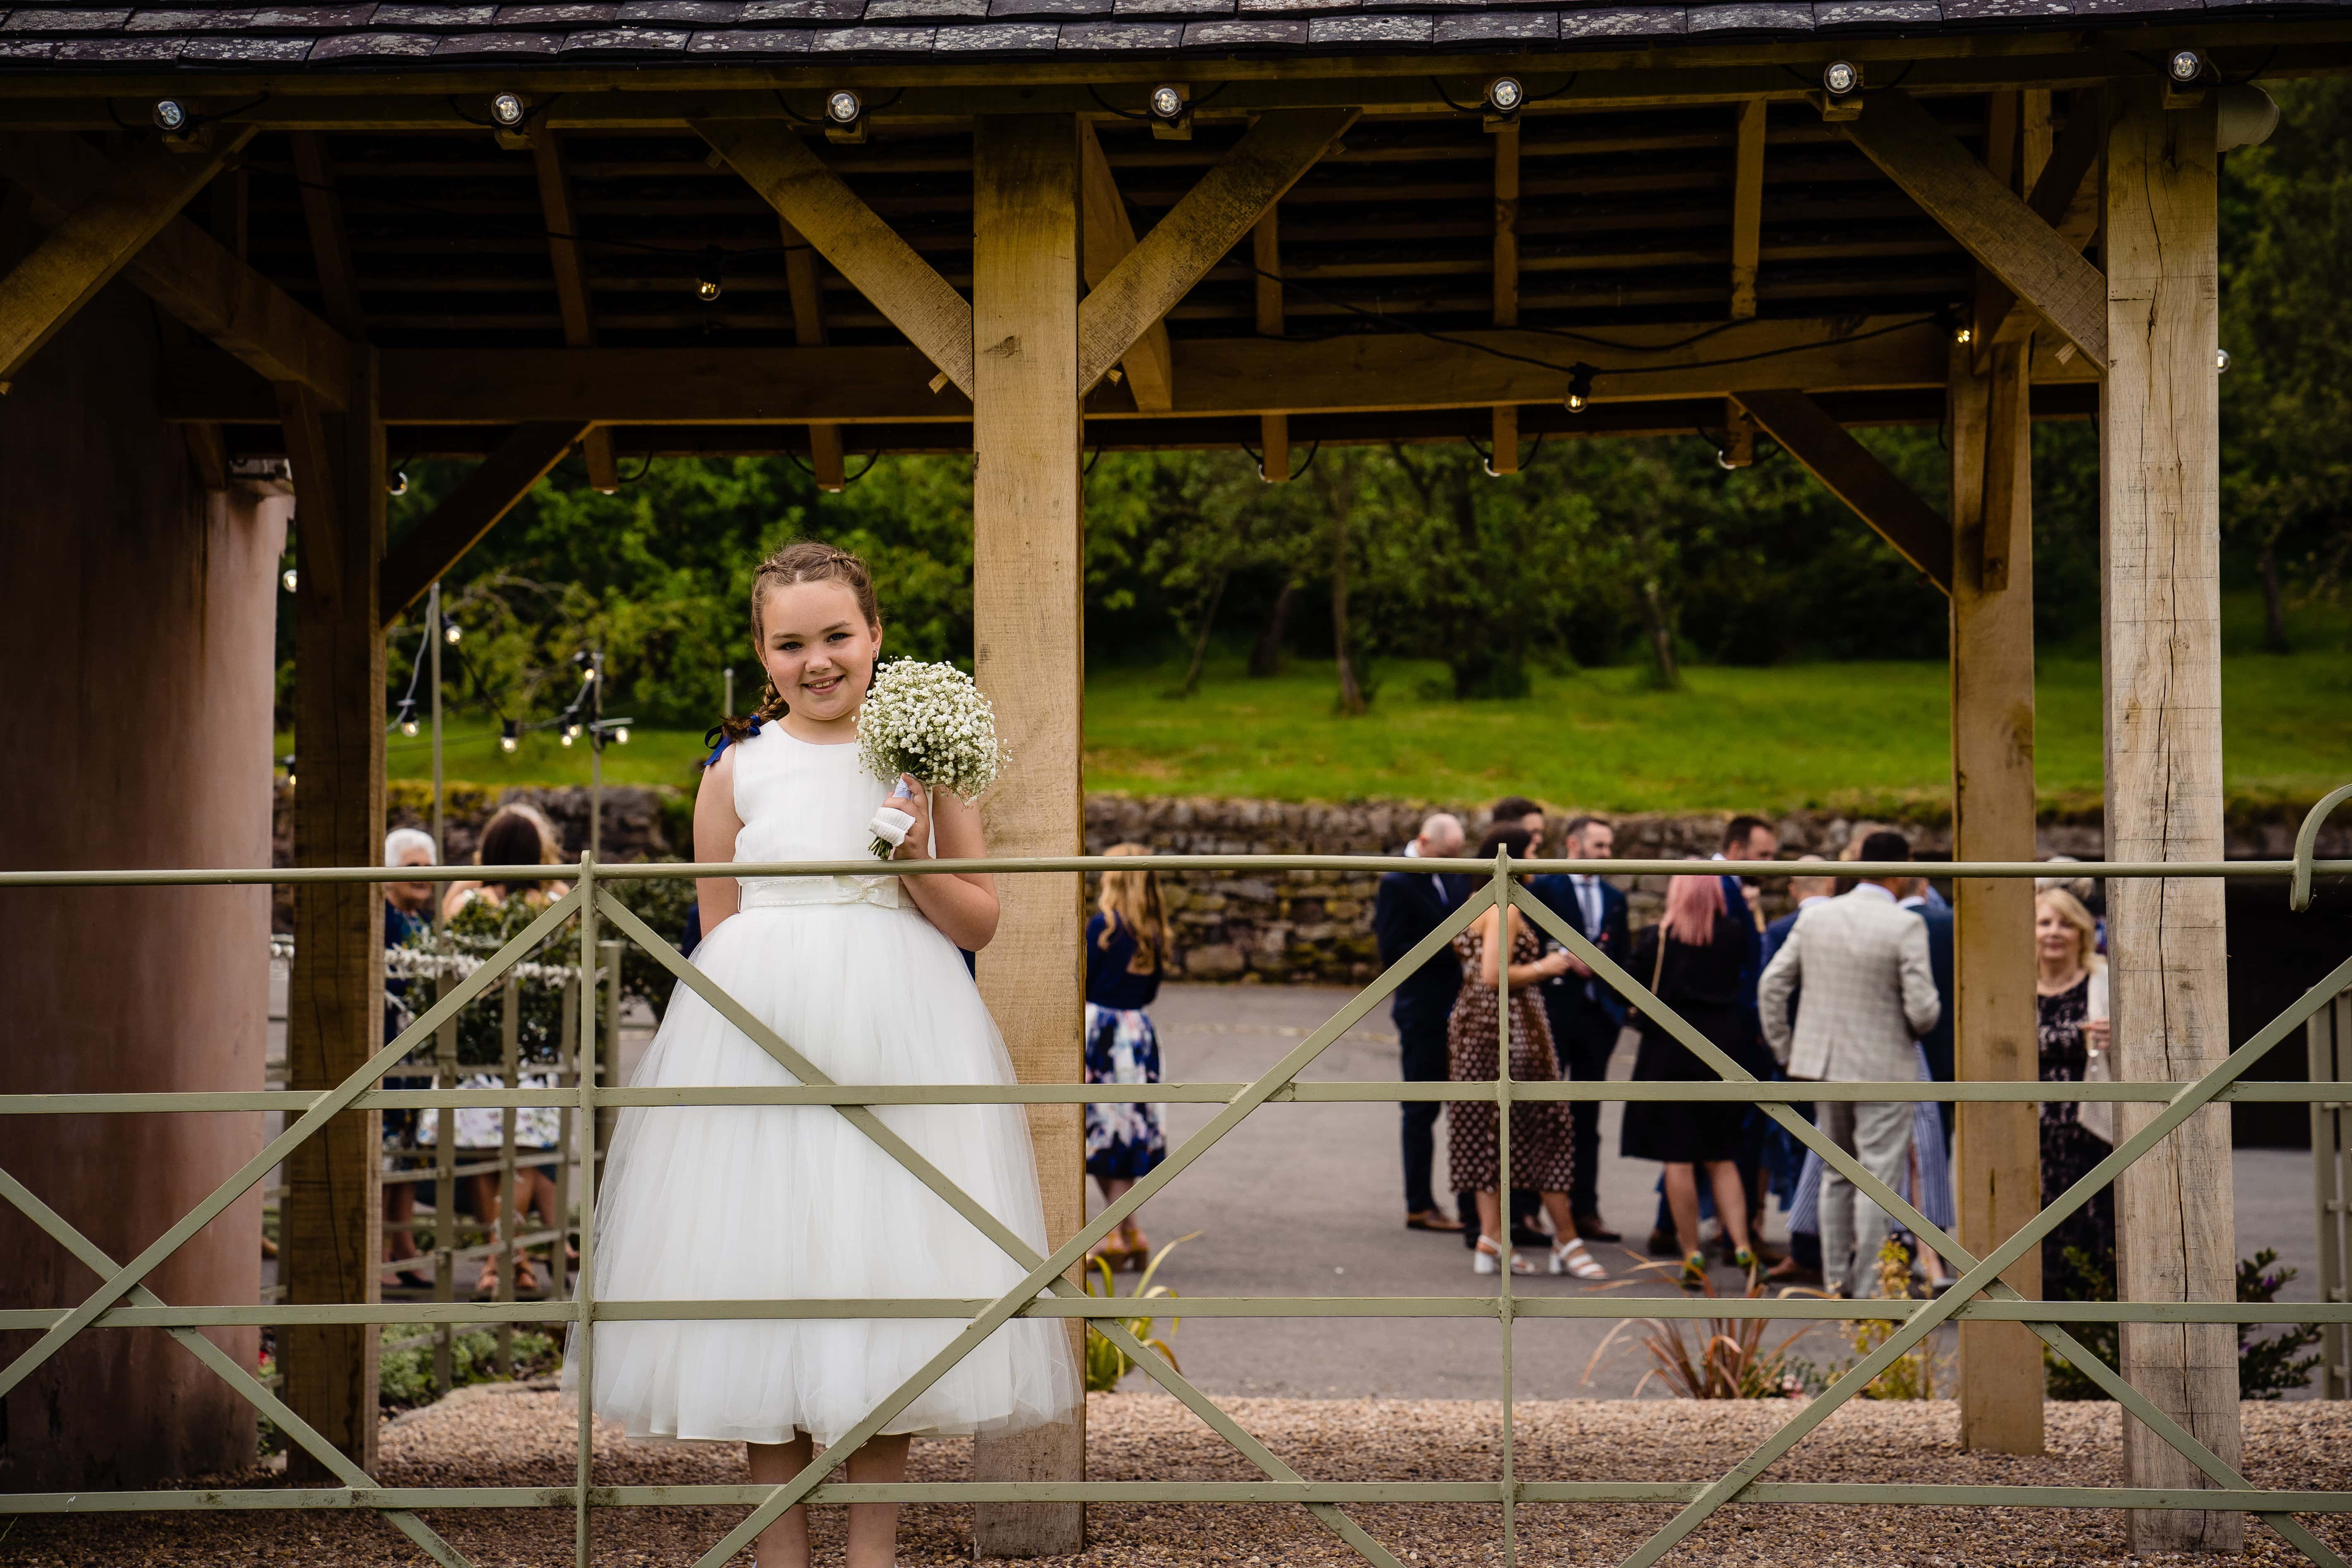 Bride, Candid, Derbyshire, Derbyshire wedding photographer, documentary, White Hart weddings, wedding day, wedding photographer near me, staffordshire wedding photographer, Leek Wedding Photographer, Ashes Barn Wedding